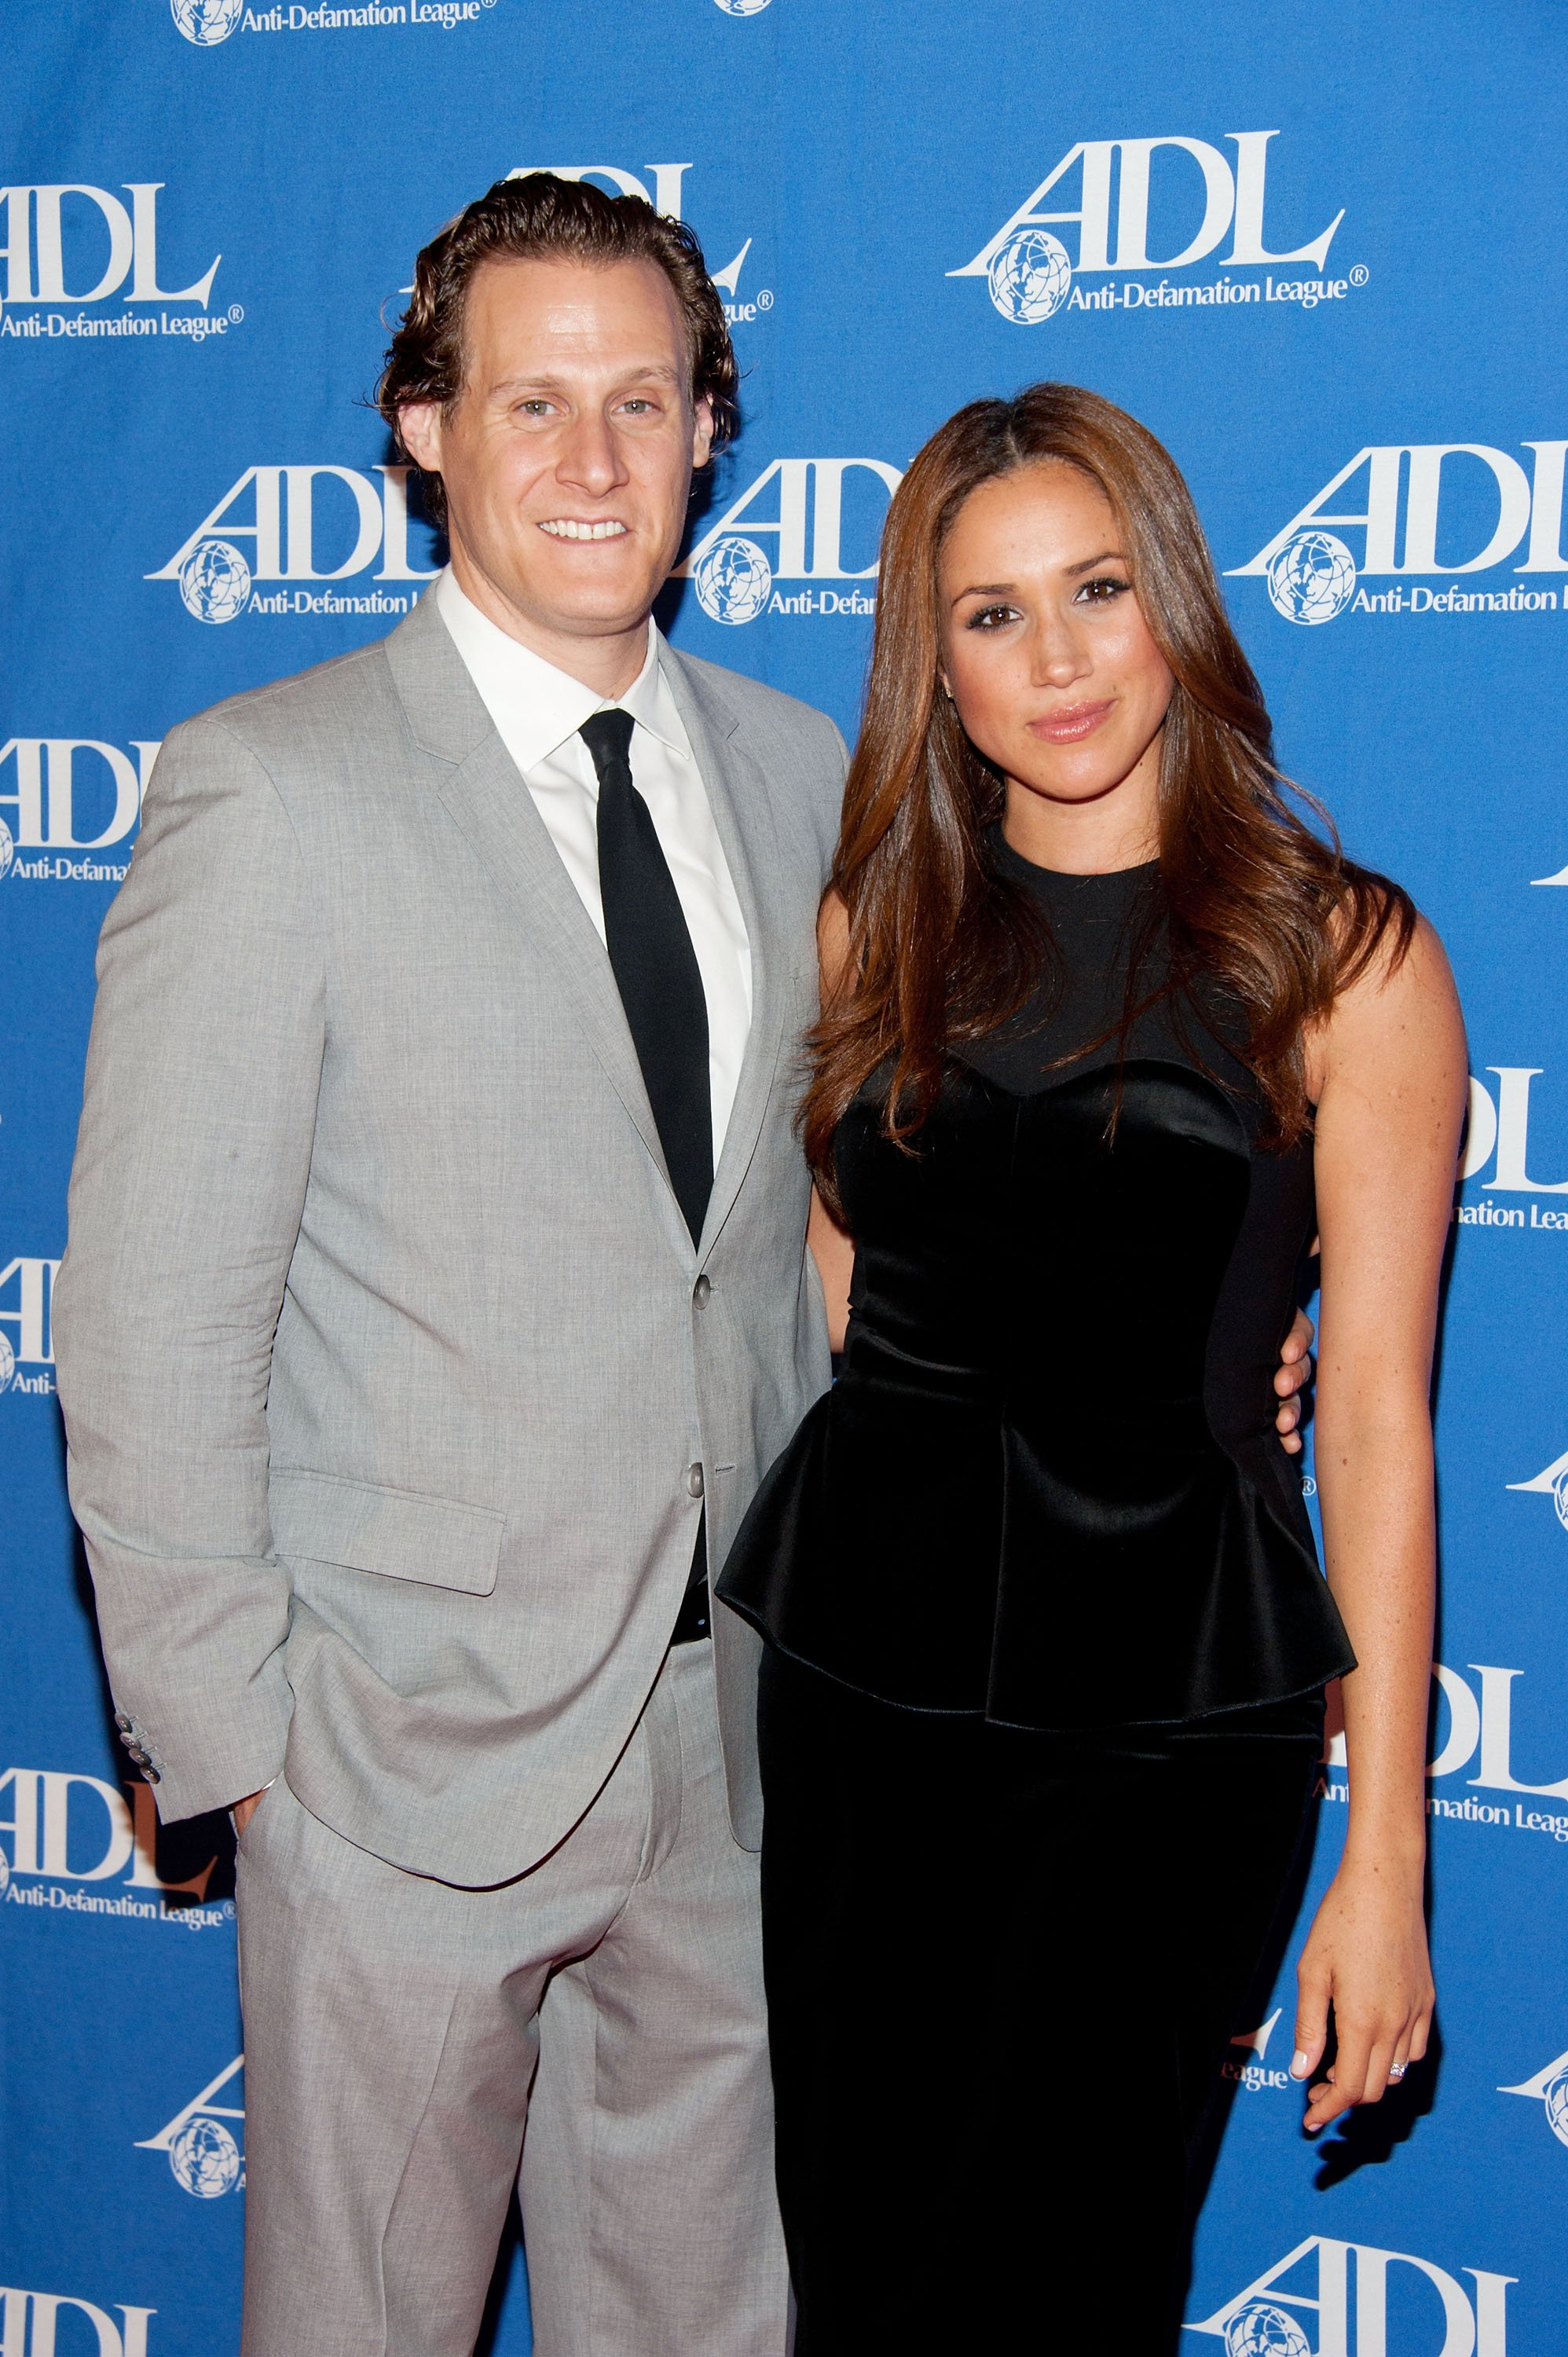 Meghan Markle and Trevor Engelson at the Anti-Defamation League Entertainment Industry Awards Dinner on October 11, 2011, in Beverly Hills   Photo: Getty Images